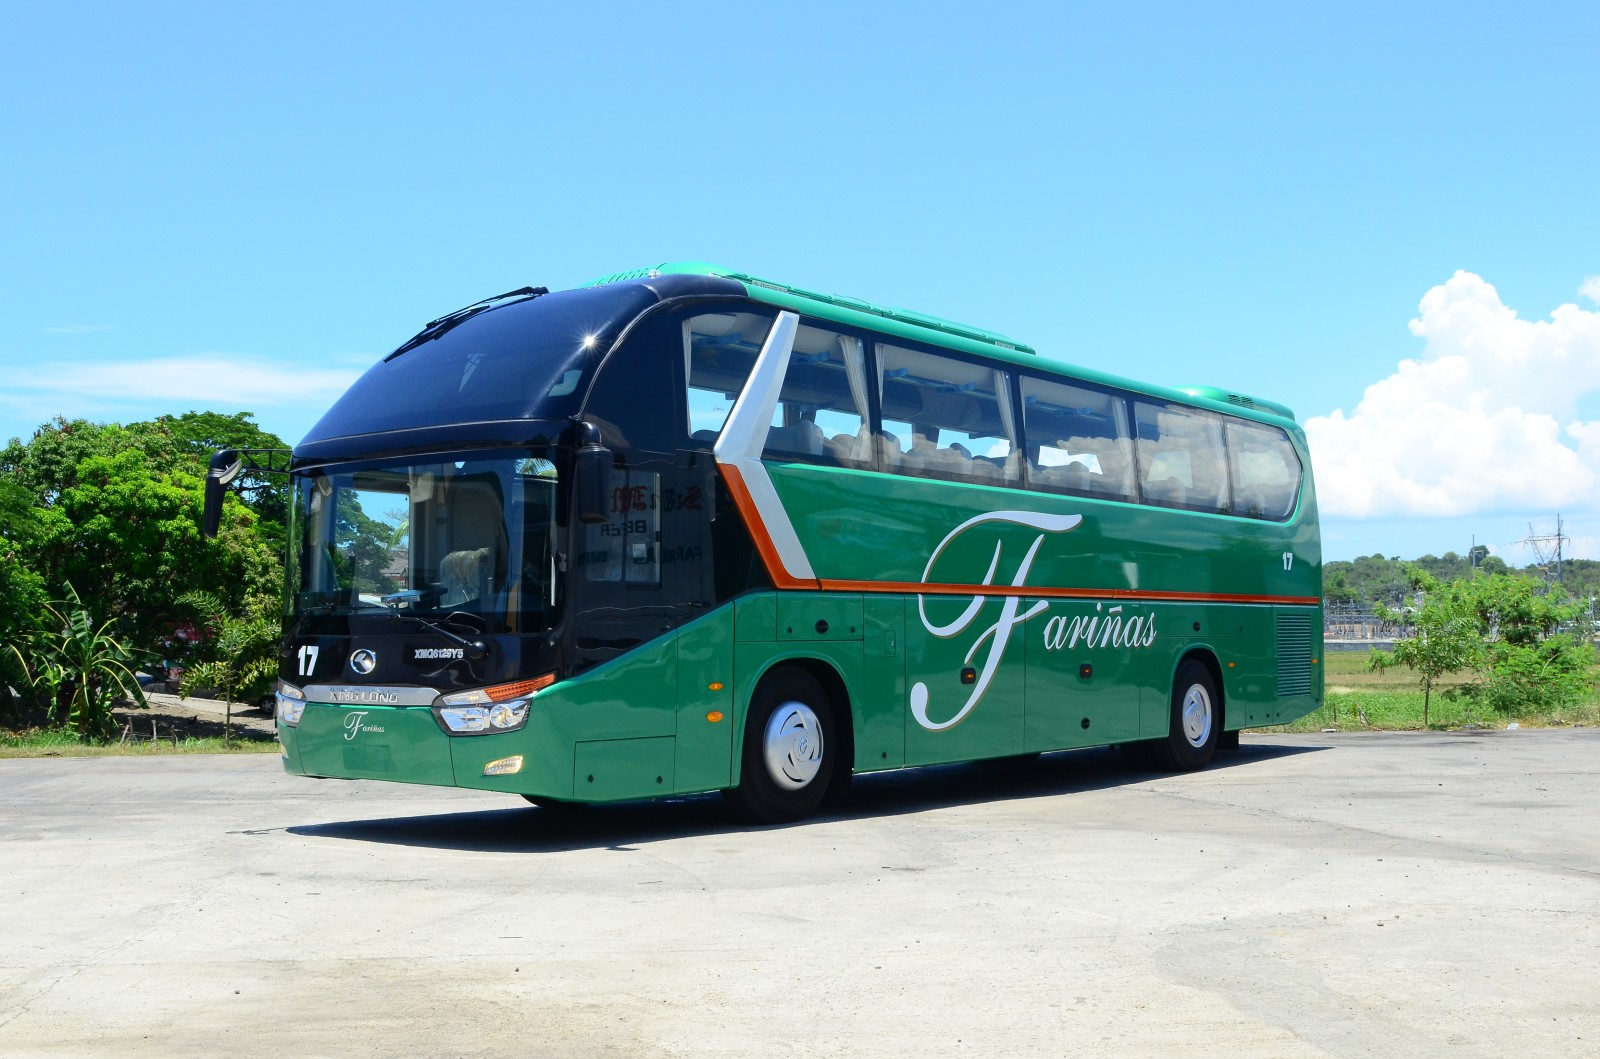 farinas-bus-online-booking-phbus.jpg